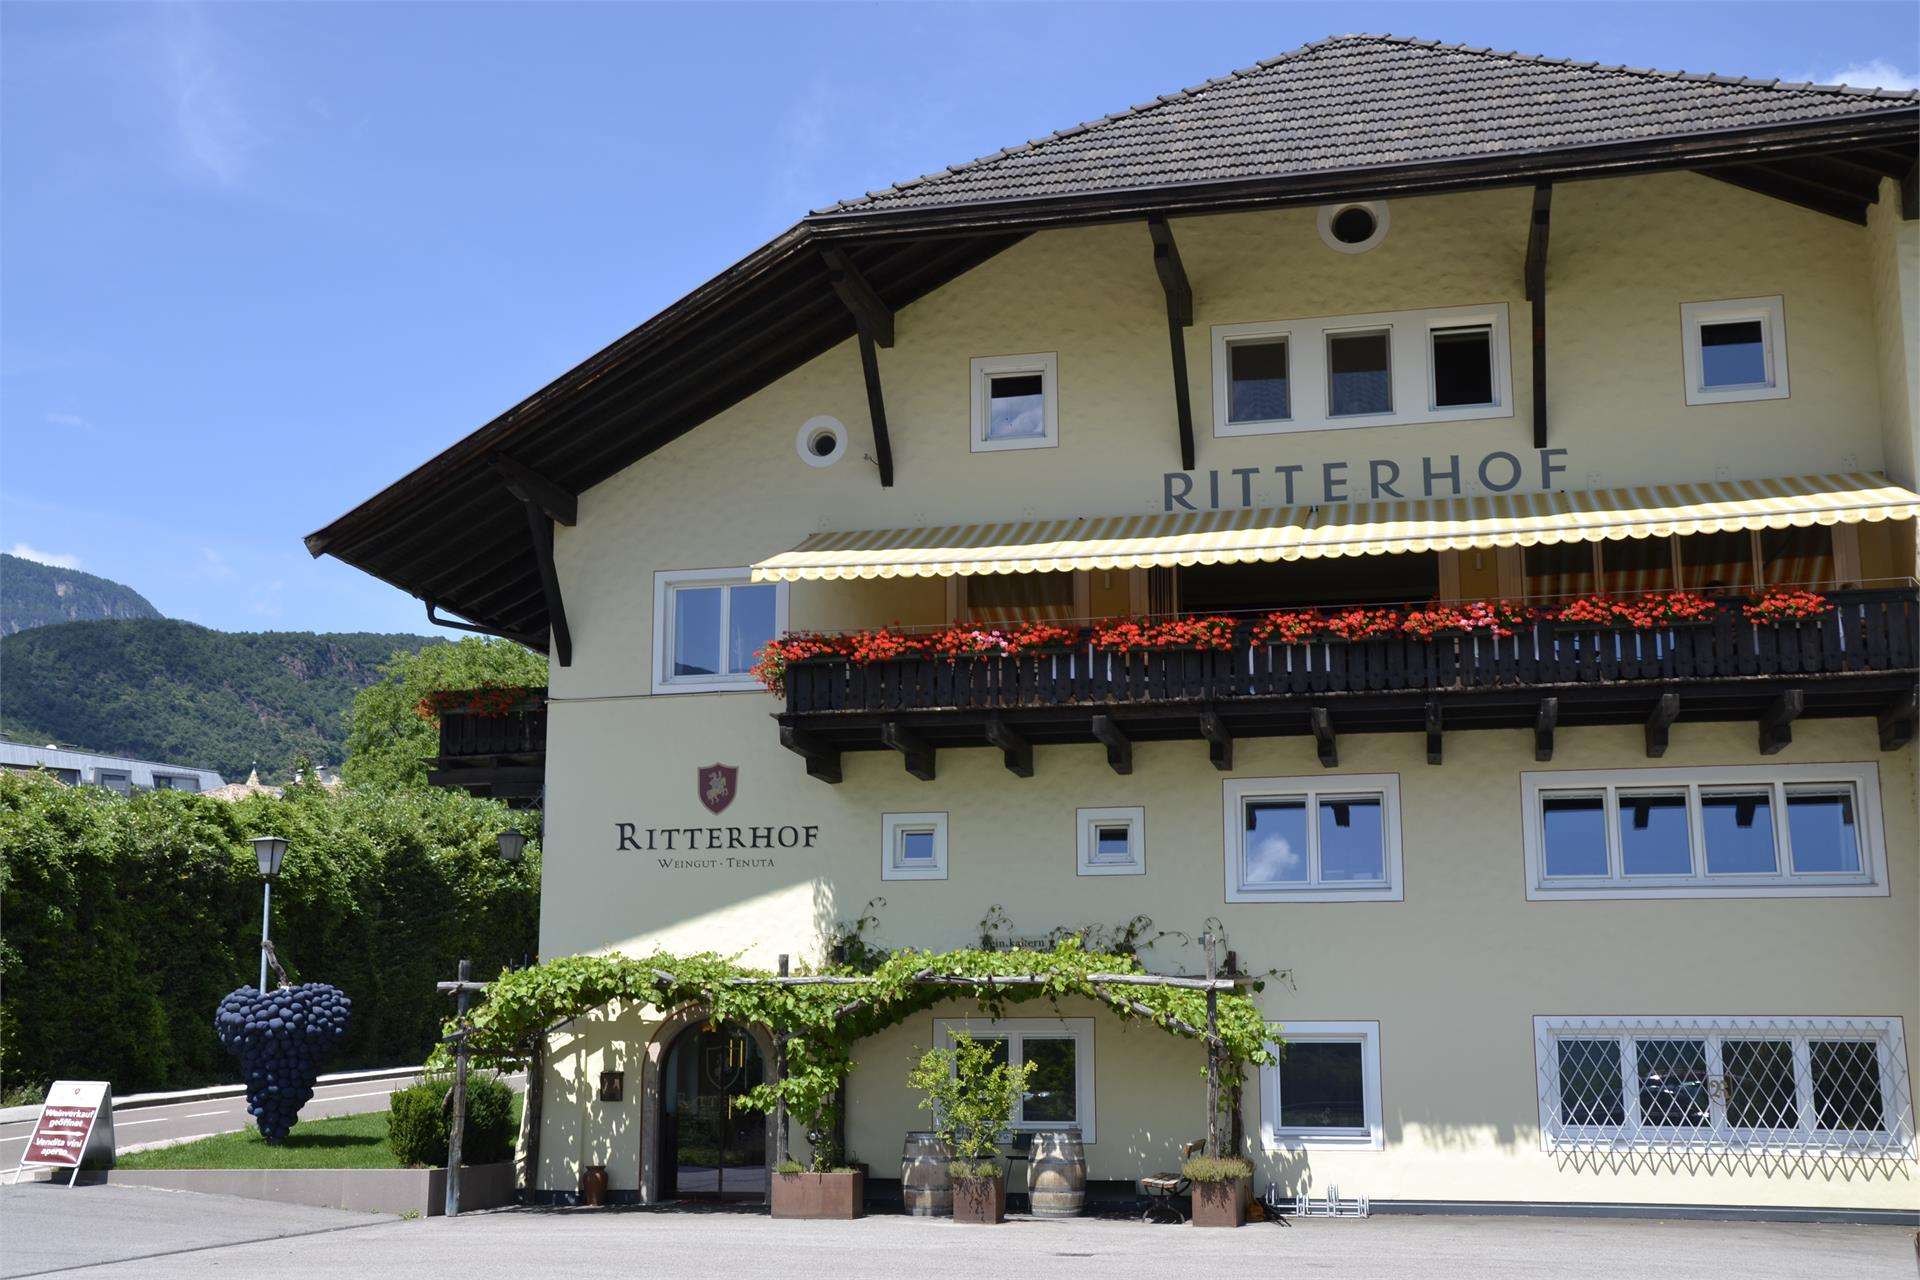 Winery Ritterhof